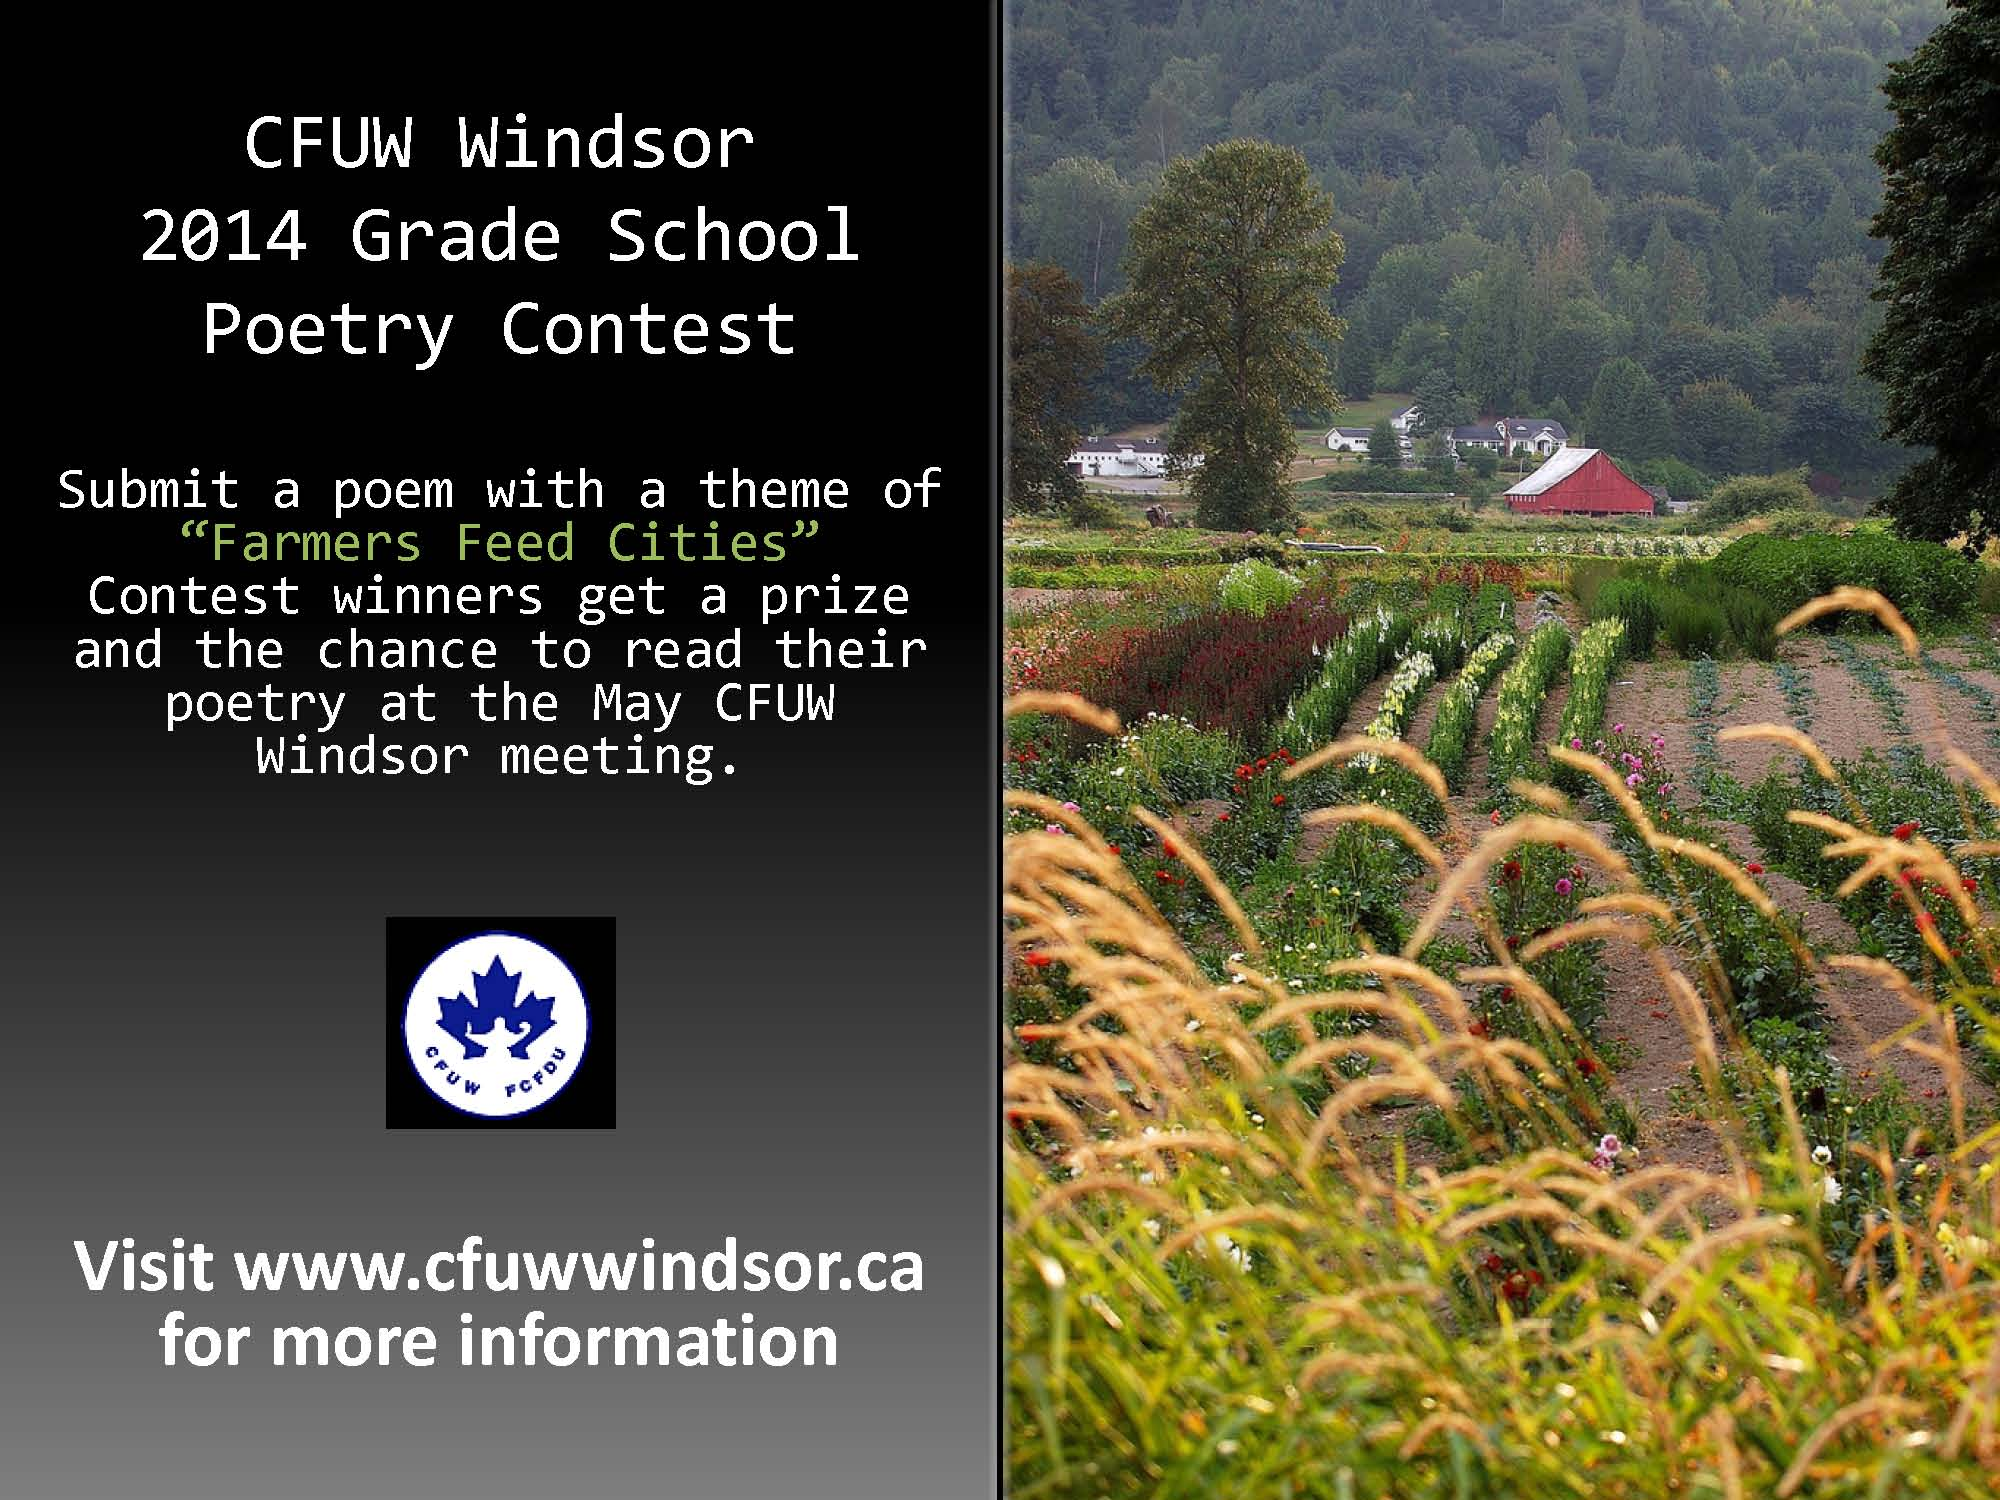 """CFUW Windsor holds an annual poetry contest for English and French primary school students in Windsor and Essex County. The poetry contest is the brain child of member Rosine Mailloux. Rosine is a retired teacher and a poetry lover. Poems are judged by a rotating panel of CFUW members and friends of CFUW. The theme for the 2014 poetry contest is """"Farmers Feed Cities"""" in celebration of the UN's International Year of the Family Farmer which is intended to emphasize how family farmers have a strong impact on food security, poverty, gender equality, opportunities for youth, and many other factors that could help improve the world as a whole.. CFUW Windsor chose this theme to raise awareness of the impact that farming has on the residents of Windsor and Essex County. All submissions are due by Friday April 4th. Submissions can be made in a Word document format to cfuwwindsor@yahoo.ca. Please reference the phrase Poetry Contest in the subject line. Each winner is invited to receive their award and present their poem at the May 7th meeting of CFUW Windsor. This year's winner's prizes will be awarded as follows. First Place – $75 Second Place – $50 Third Place – $25"""